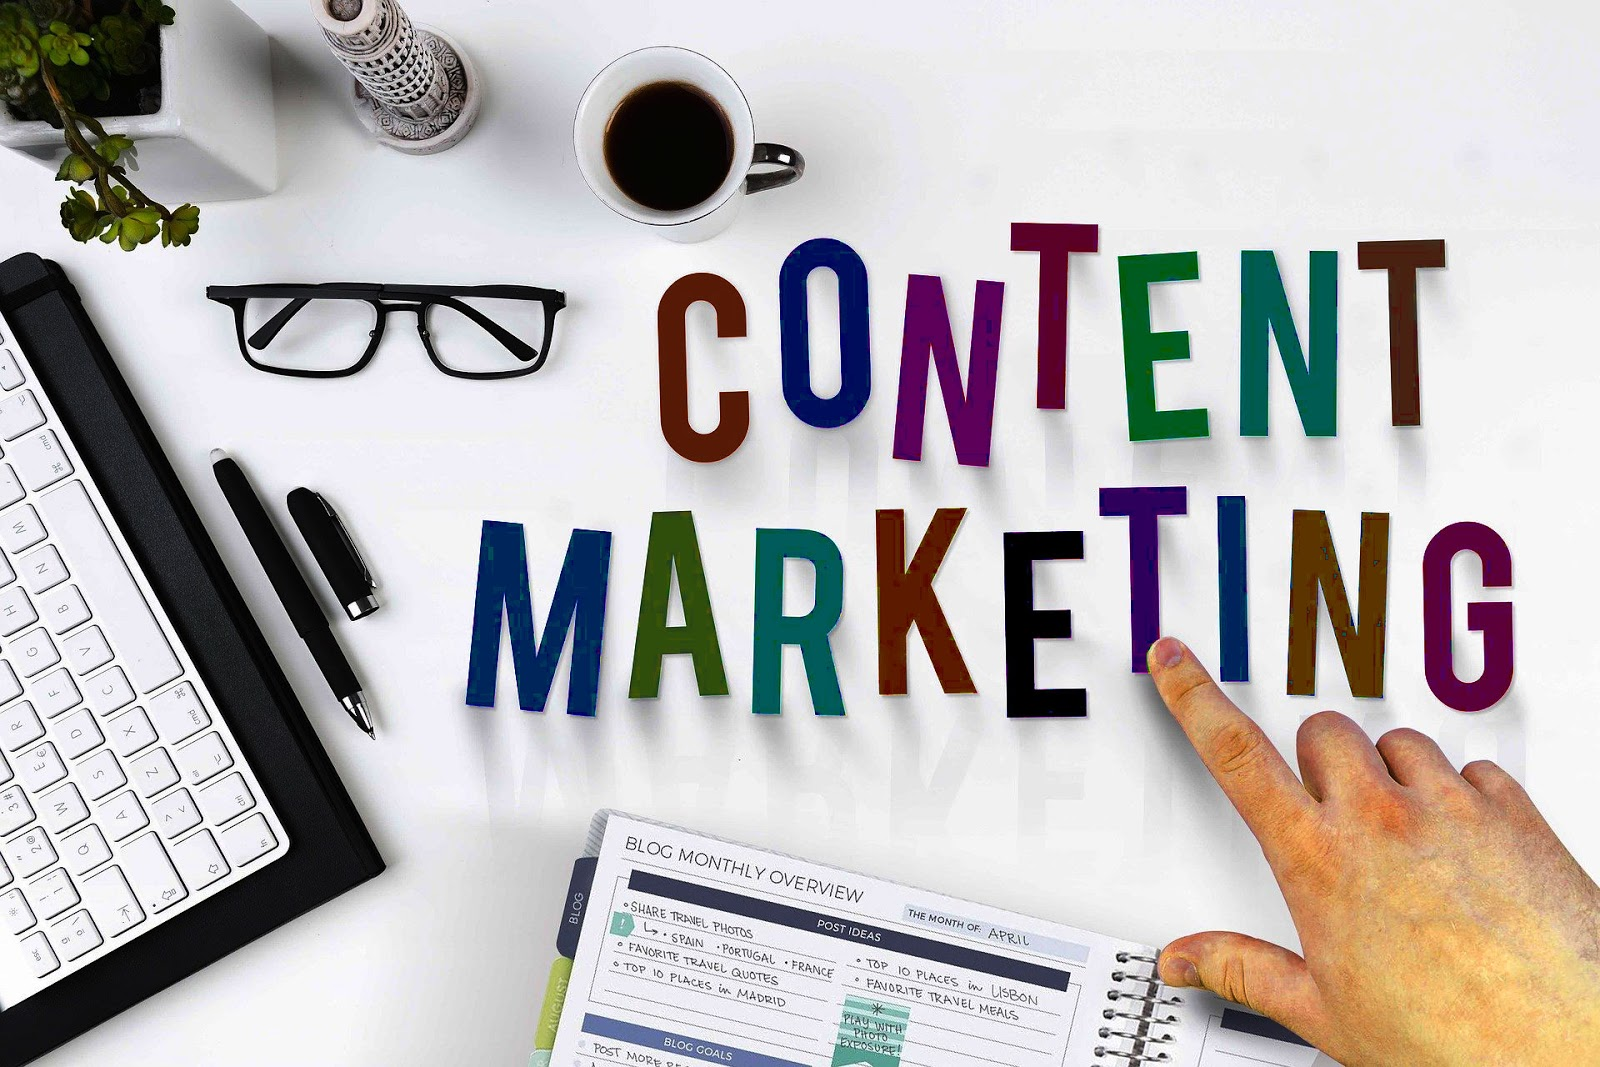 Why Hiring a Content Marketing Agency is Worthwhile